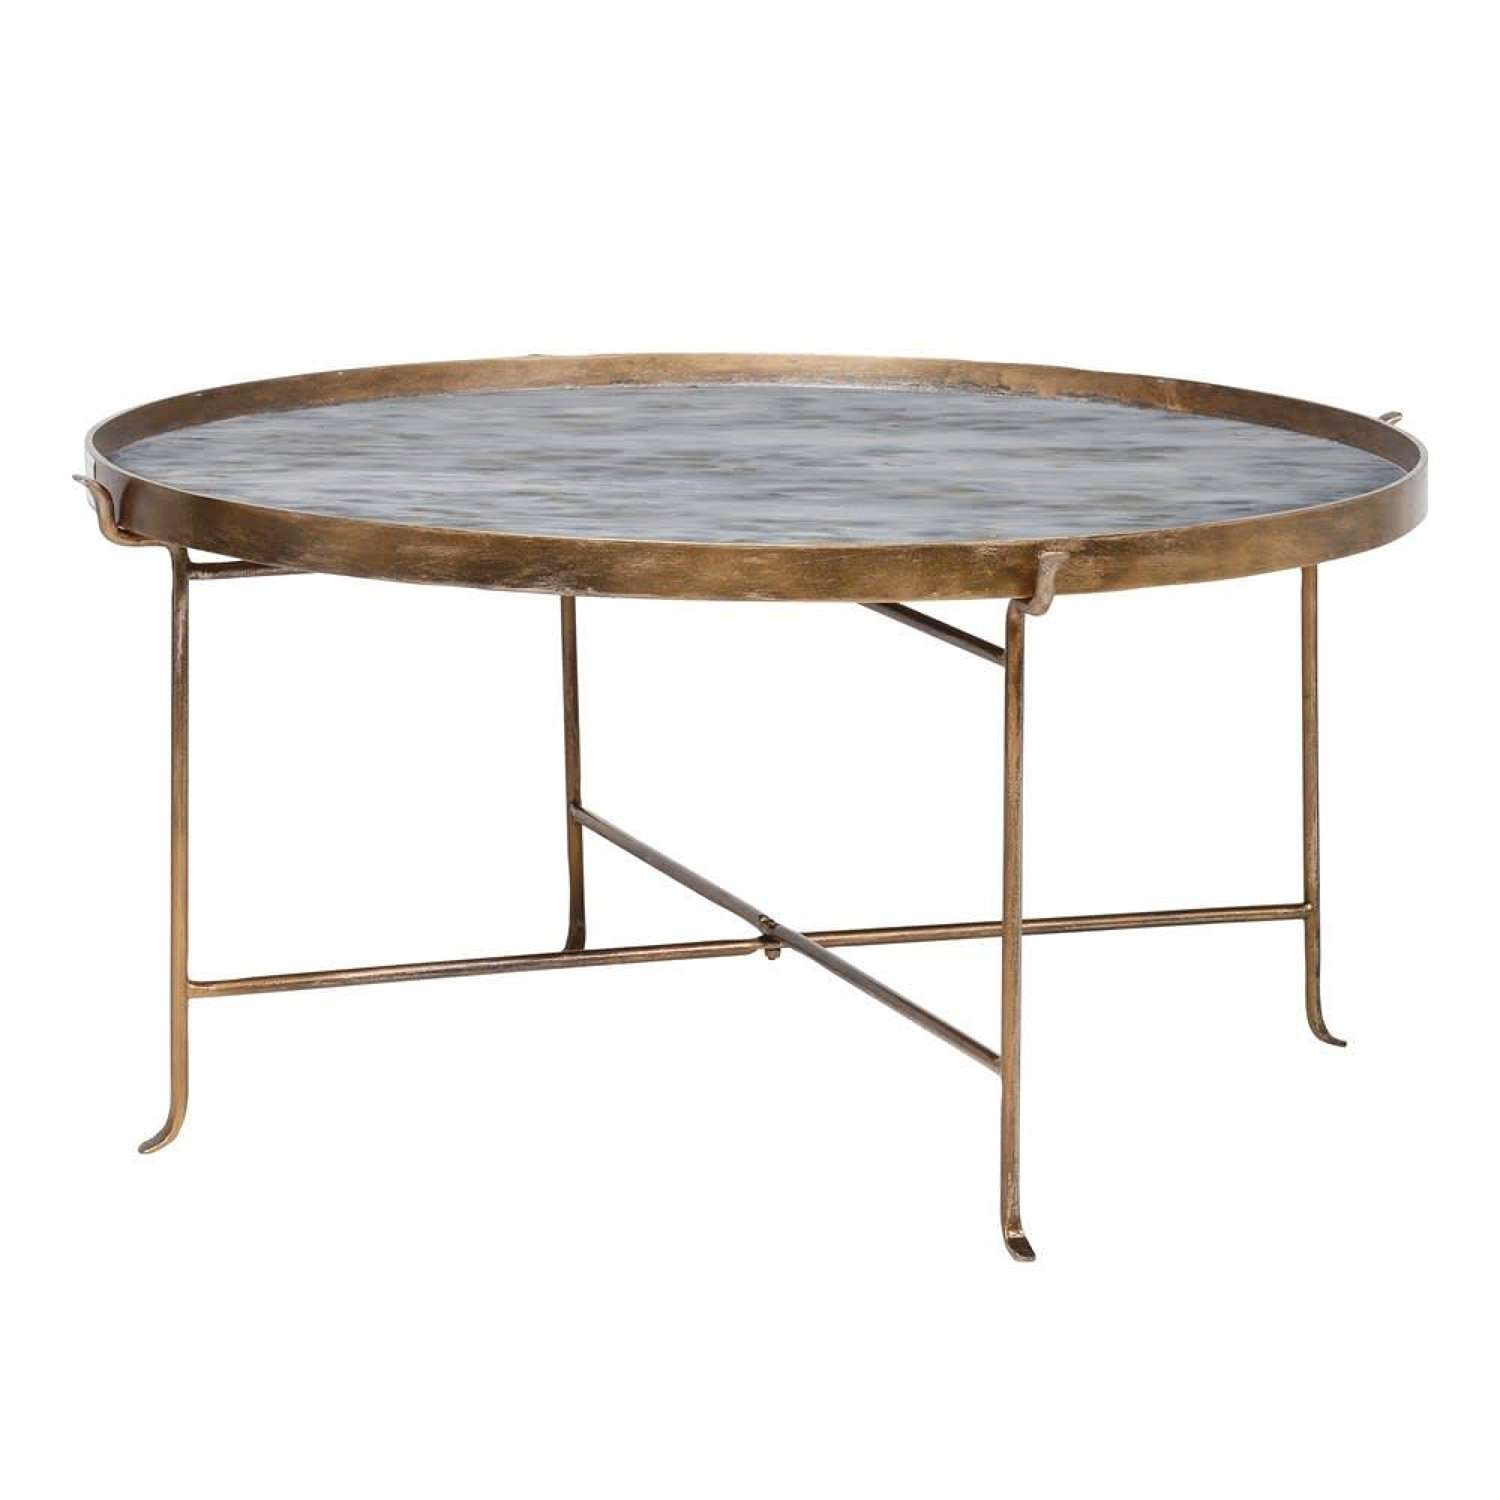 Large Rustic Antique Gold Metal Coffee Table - Pearlescent Top